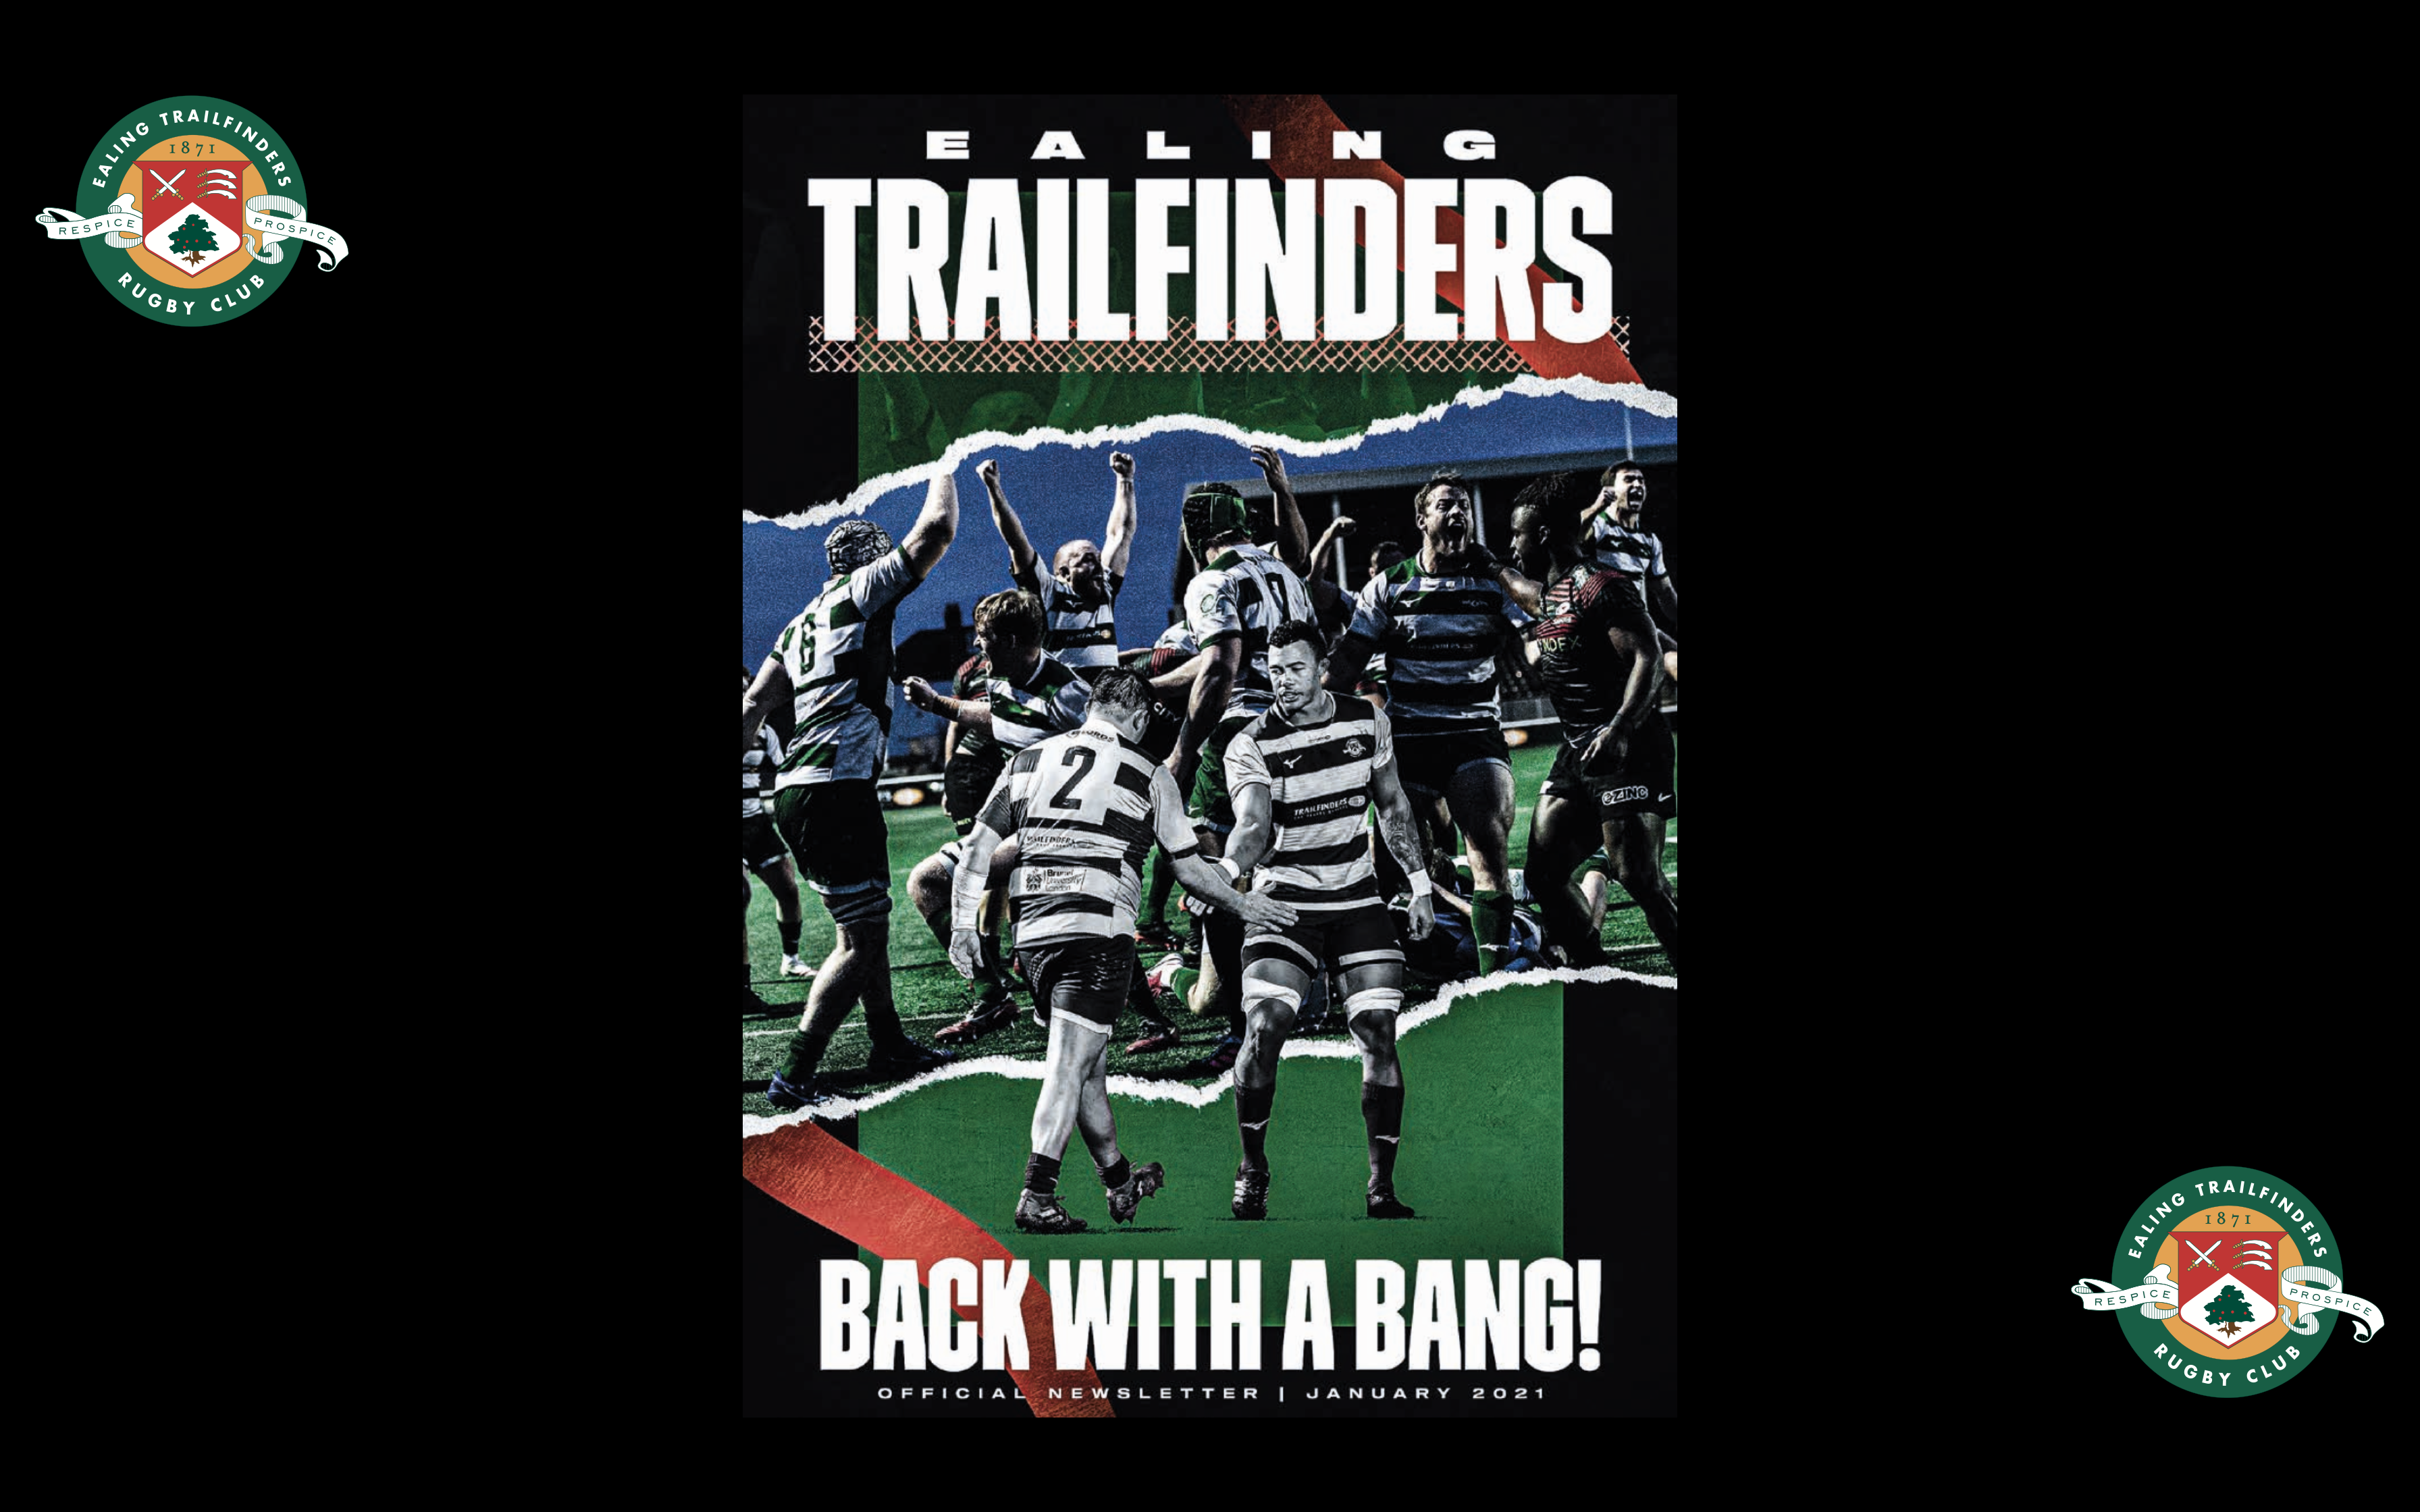 Ealing Trailfinders Times - latest copy available now!